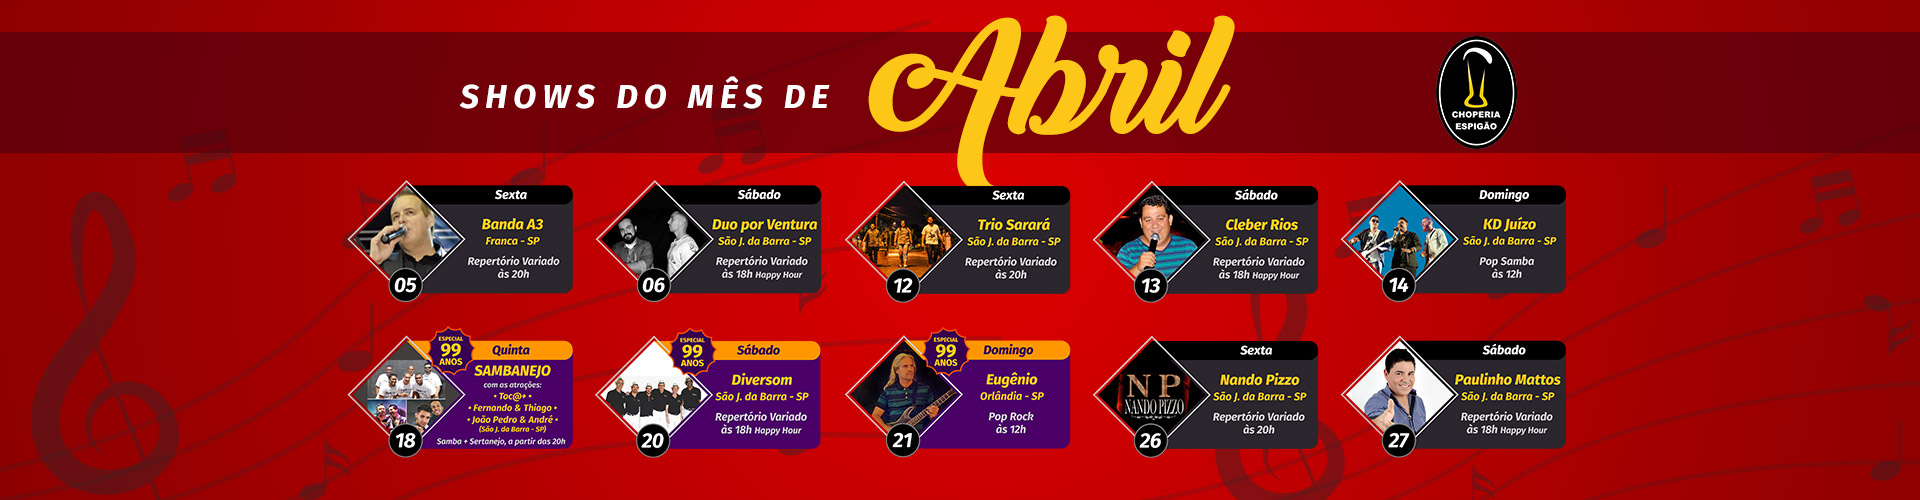 Shows Abril